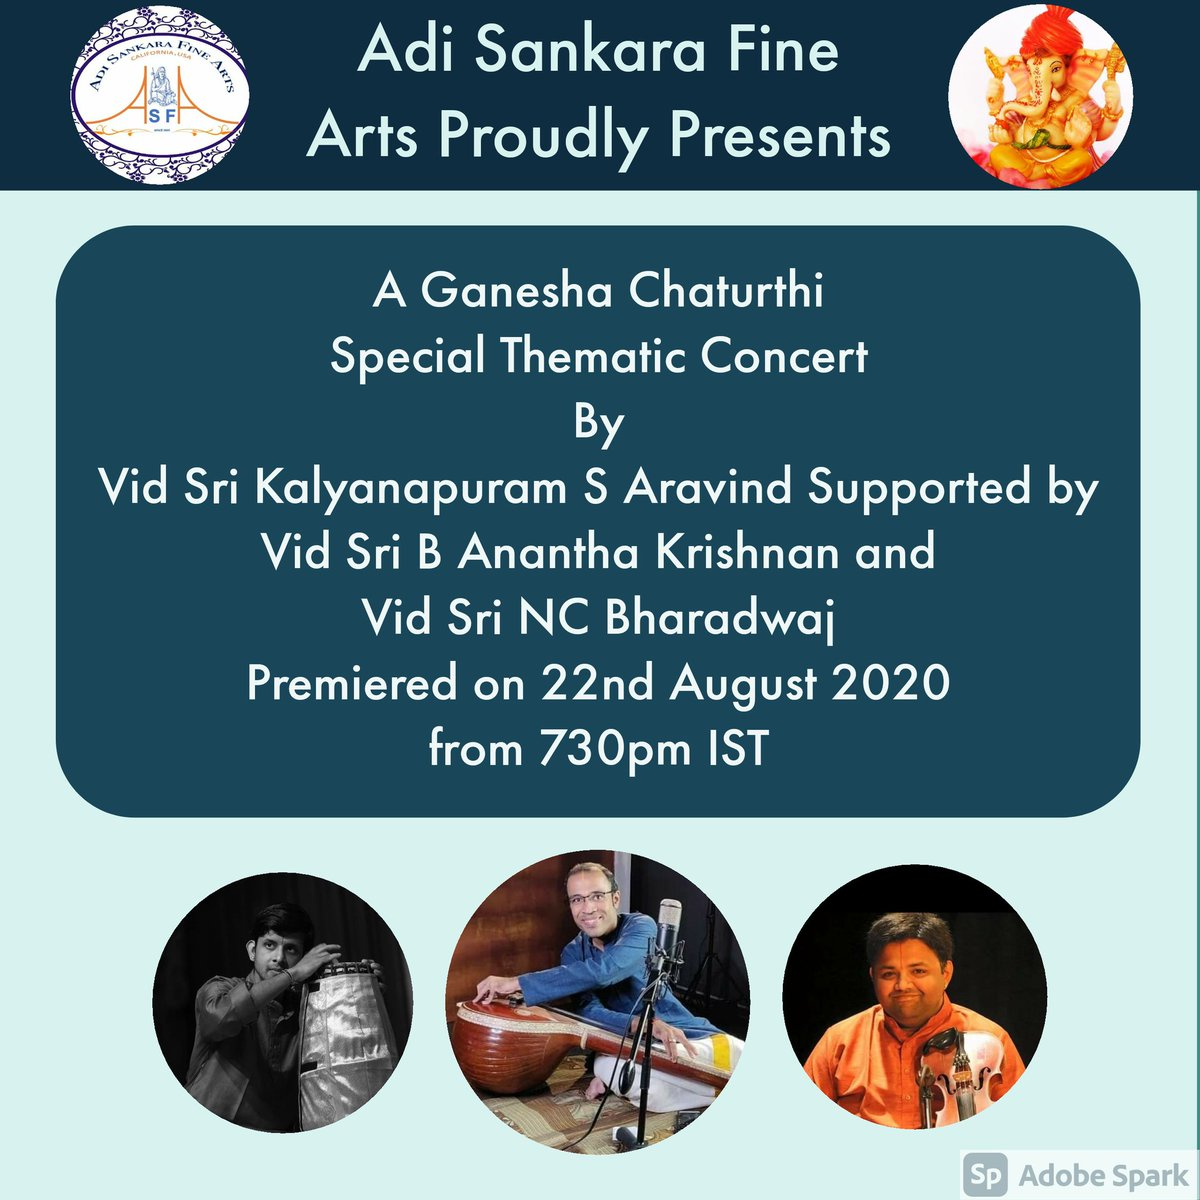 Excited to be sharing the stage with these amazing musicians for a special Ganesh Chaturthi Thematic concert https://t.co/kyJZEPePd7